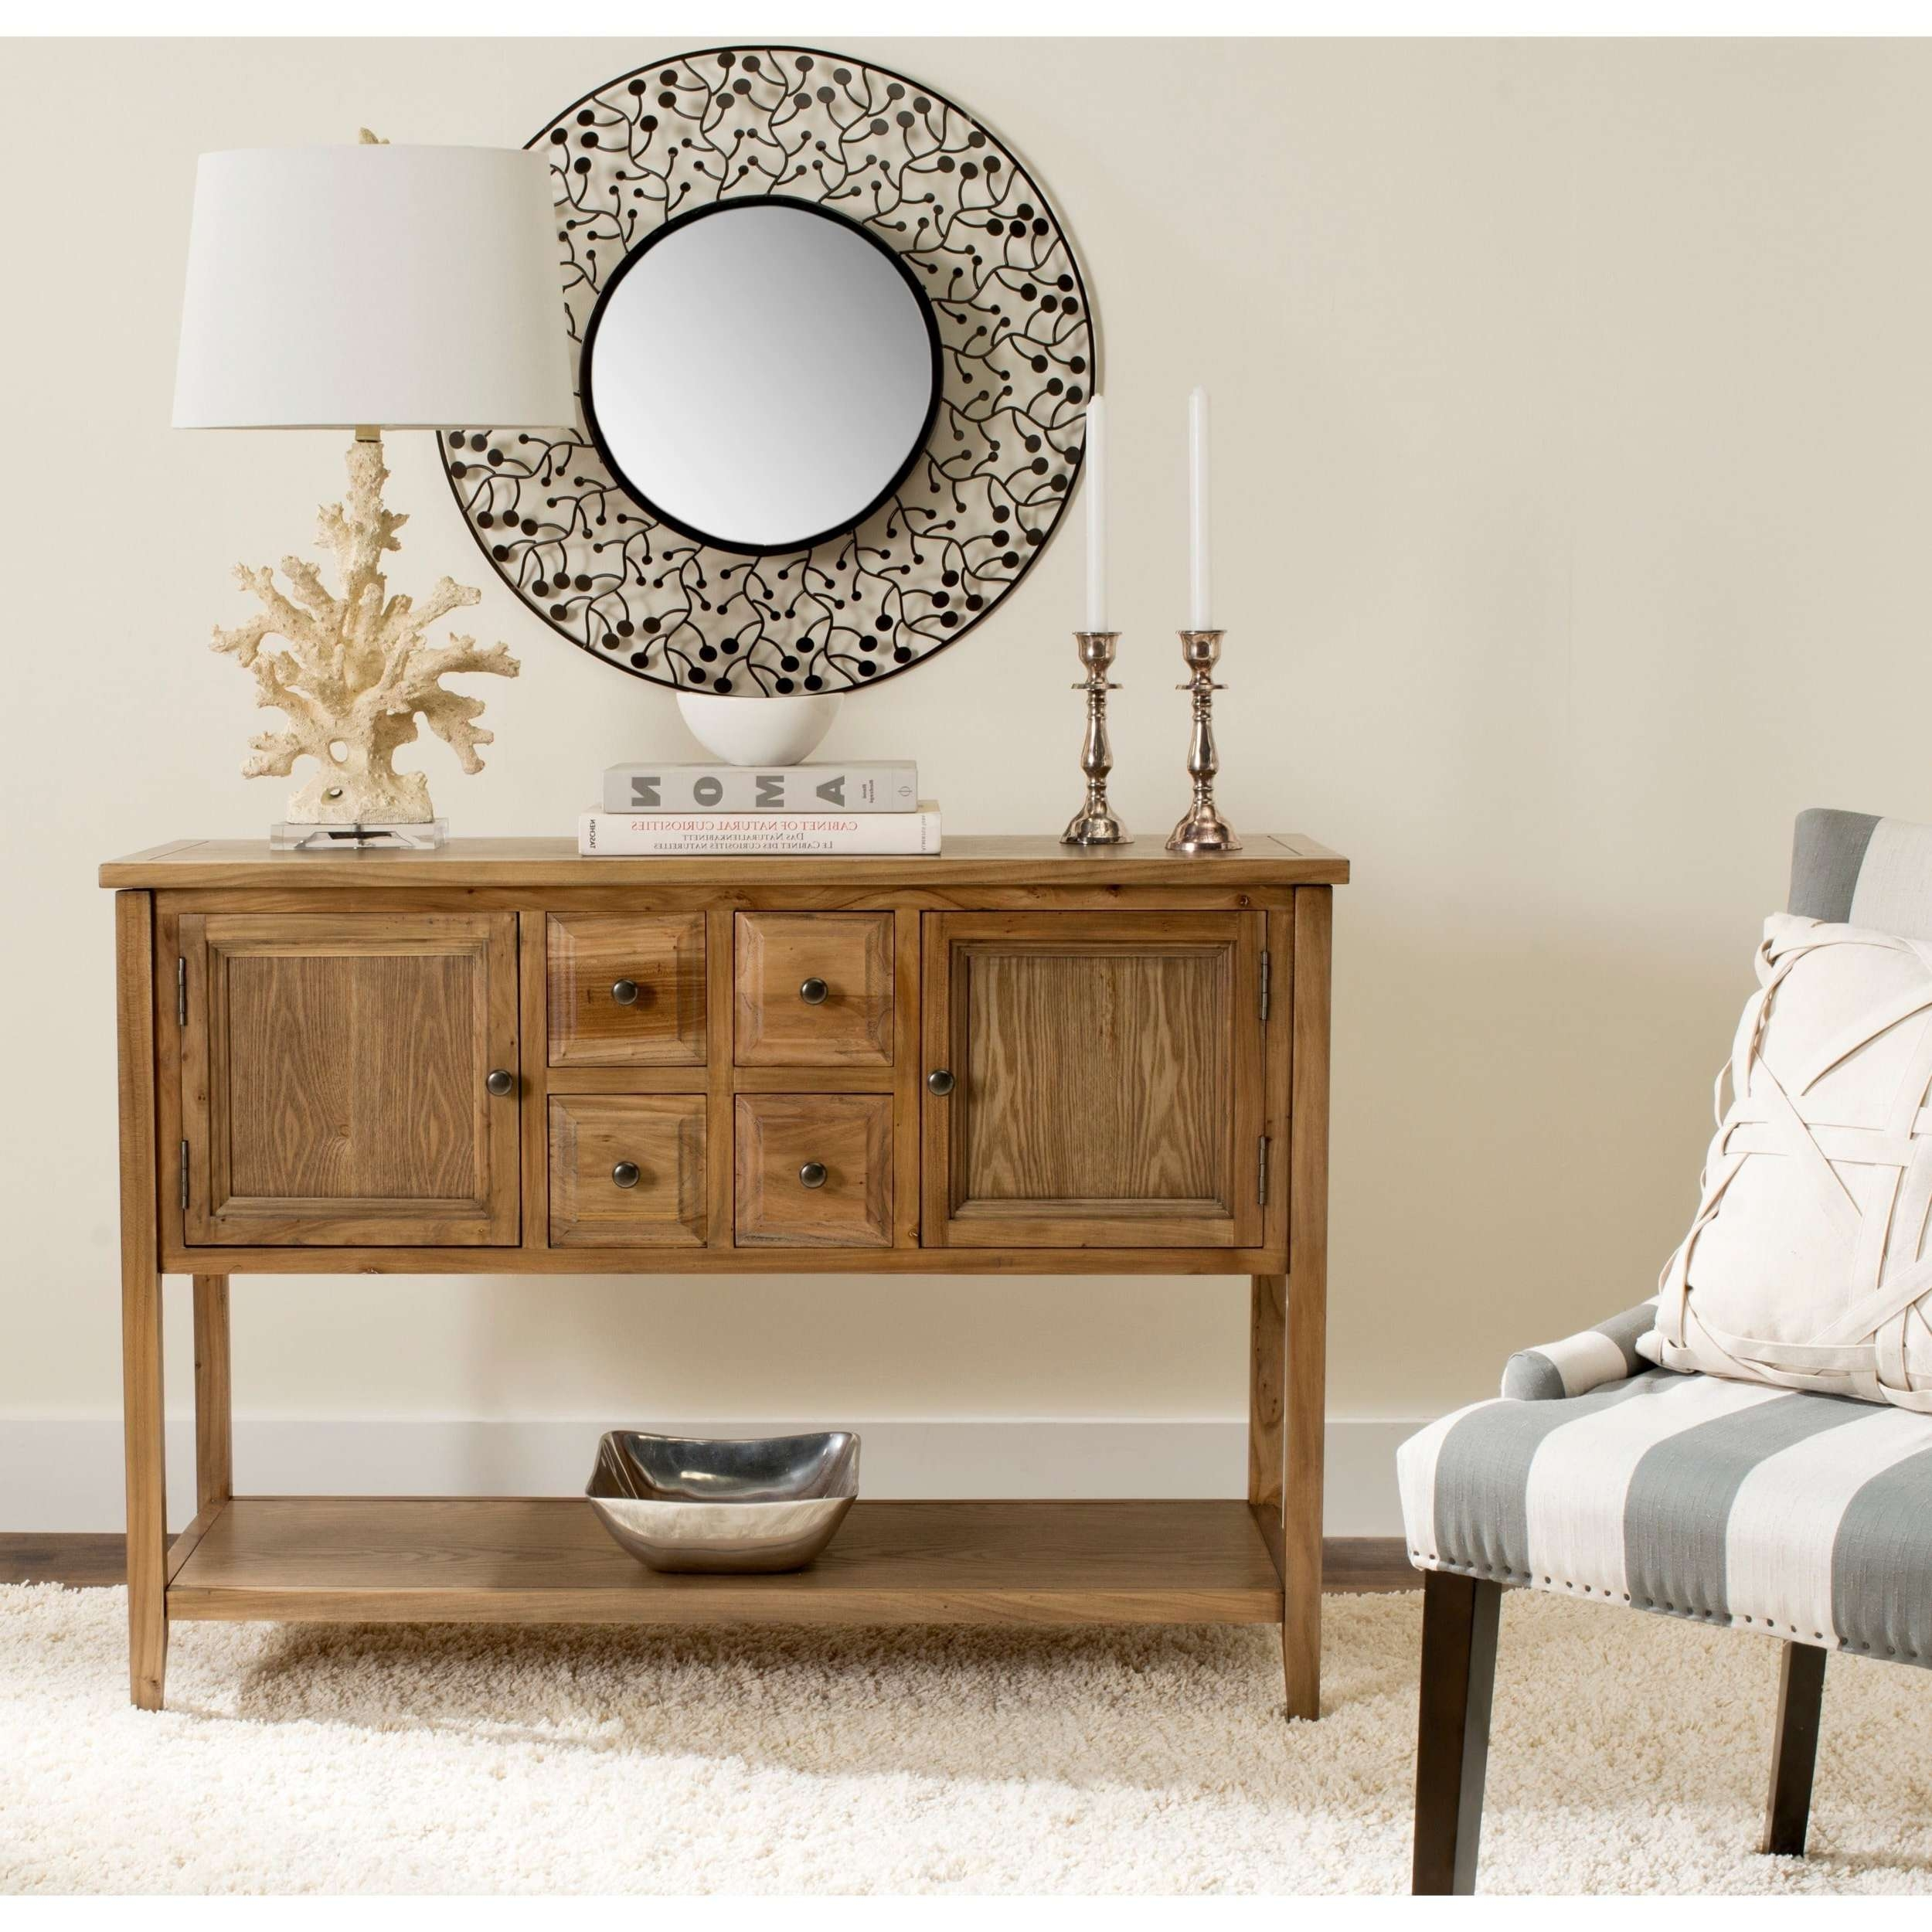 Safavieh Brighton Oak Finish Storage Sideboard – Free Shipping Intended For Safavieh Sideboards (View 11 of 20)